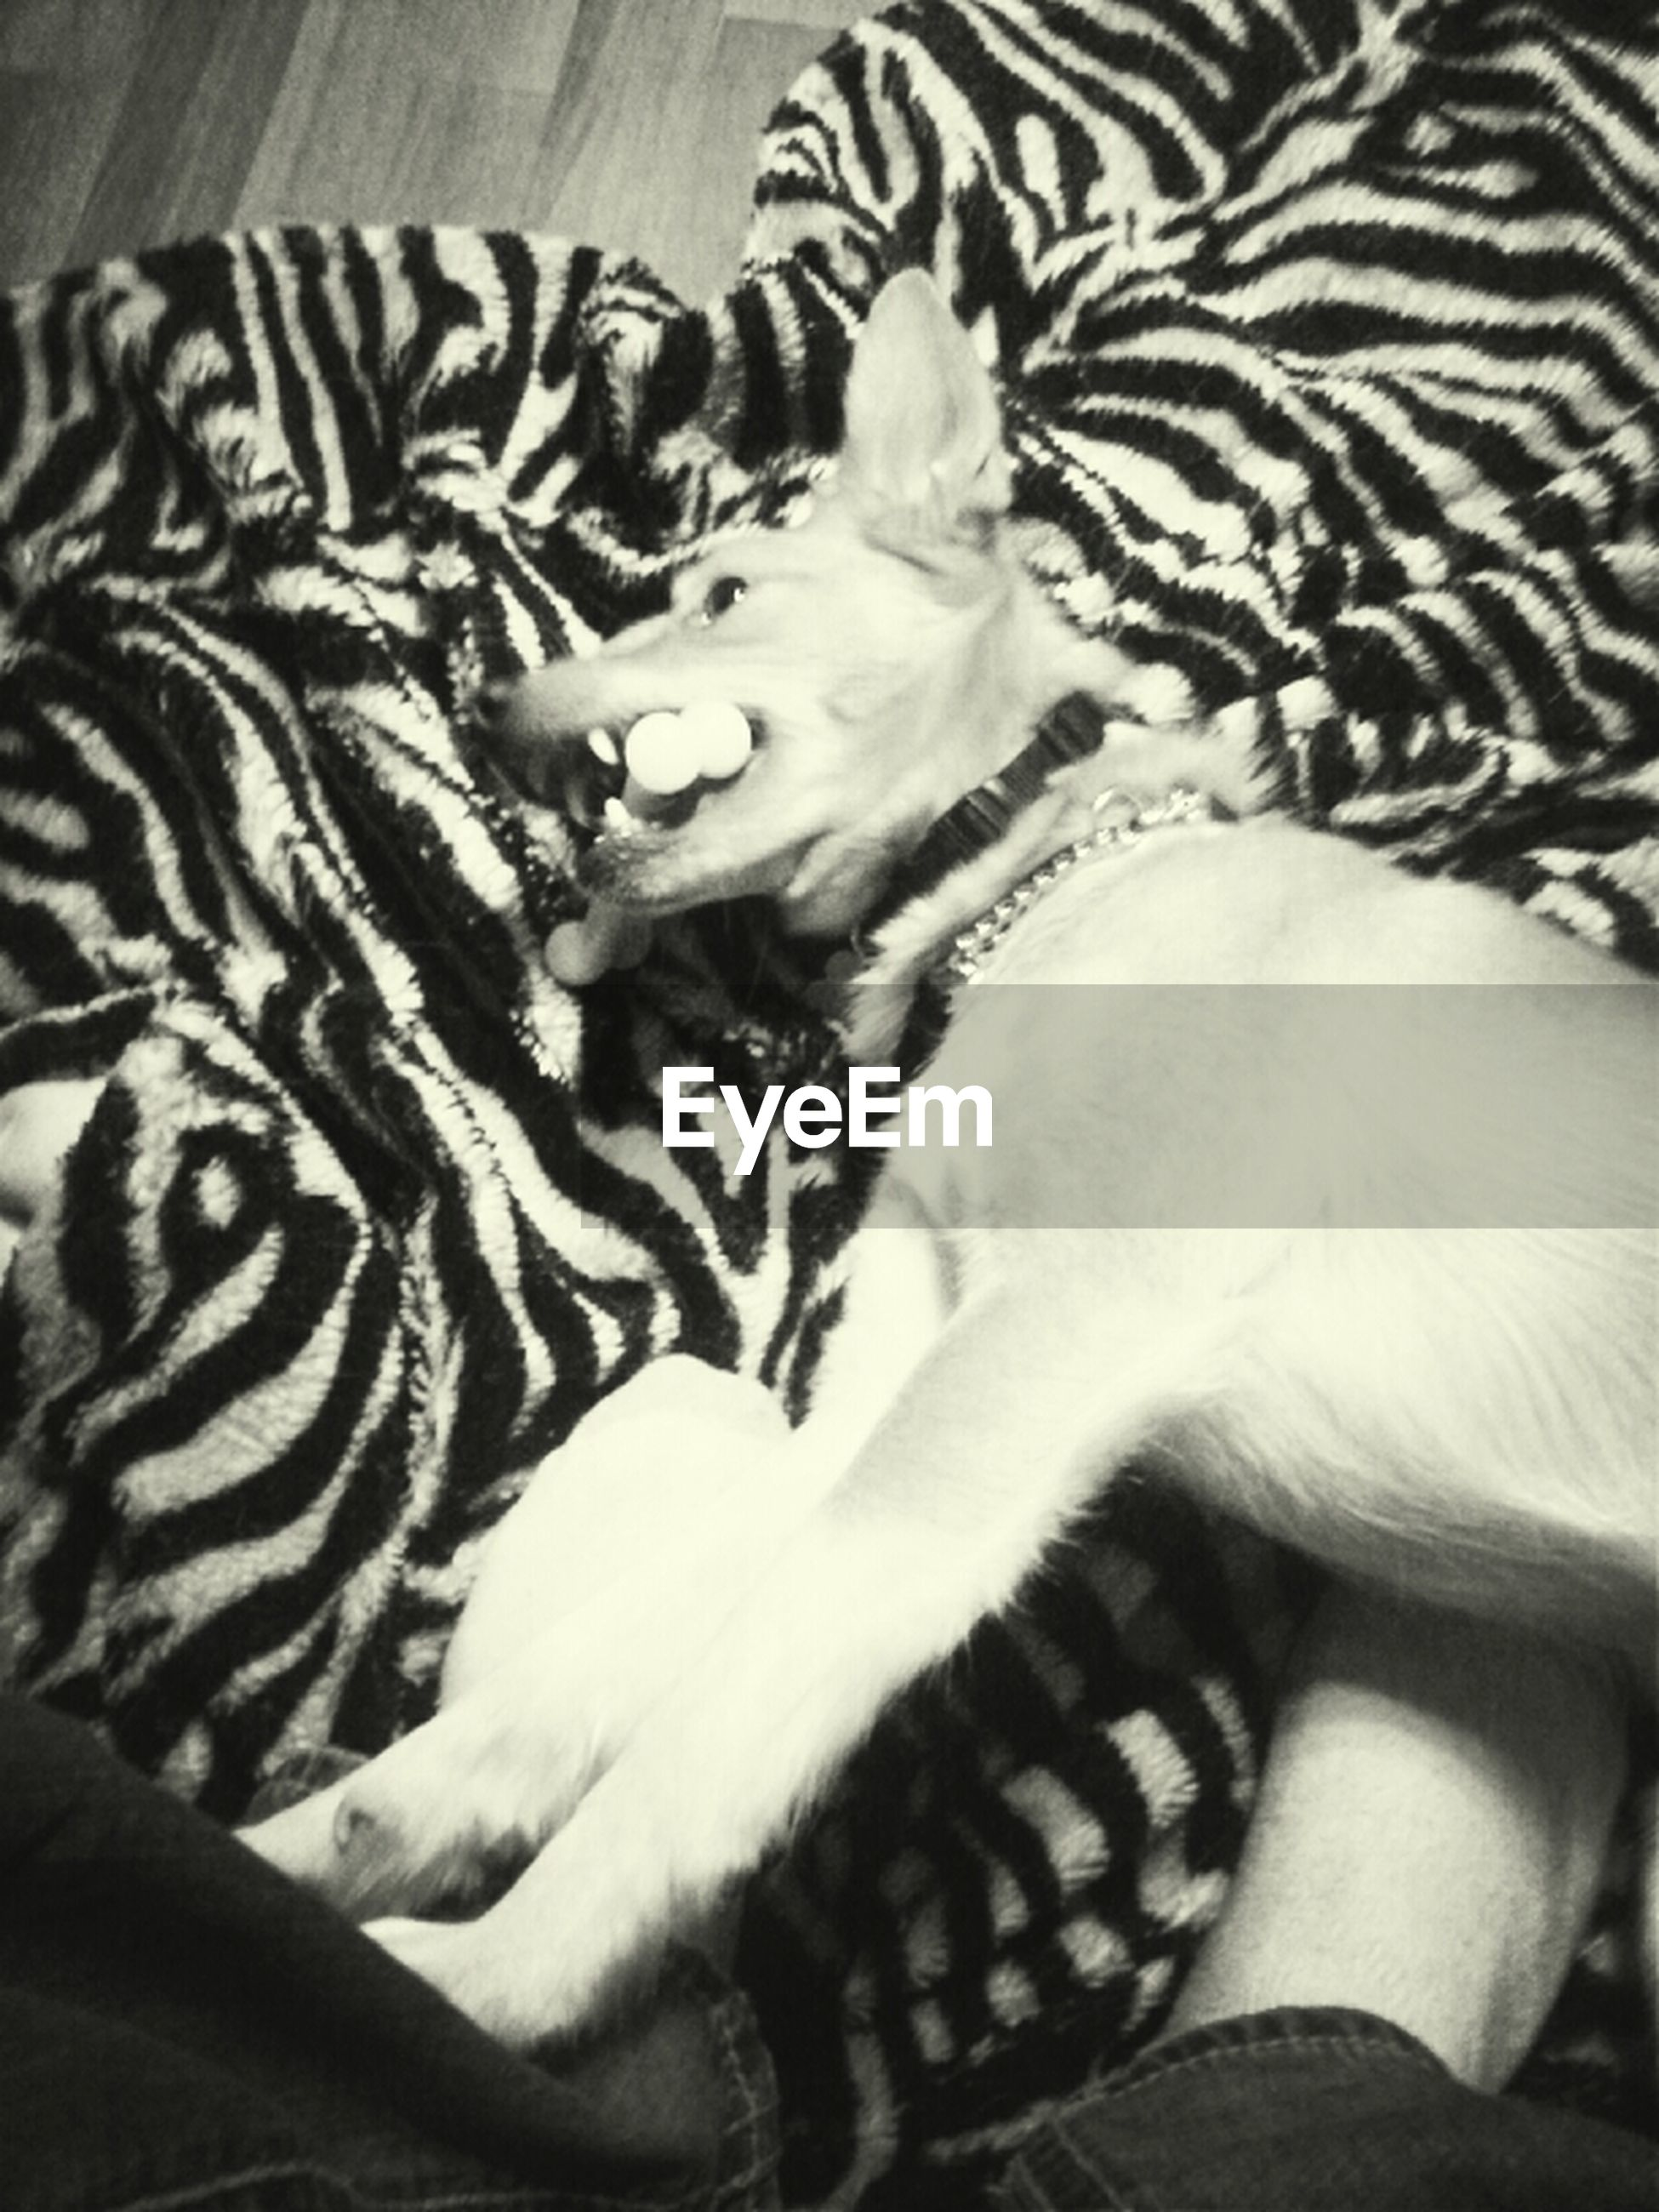 indoors, pets, animal themes, domestic animals, bed, one animal, relaxation, mammal, sleeping, resting, lying down, high angle view, blanket, home interior, dog, comfortable, sofa, domestic cat, close-up, sheet